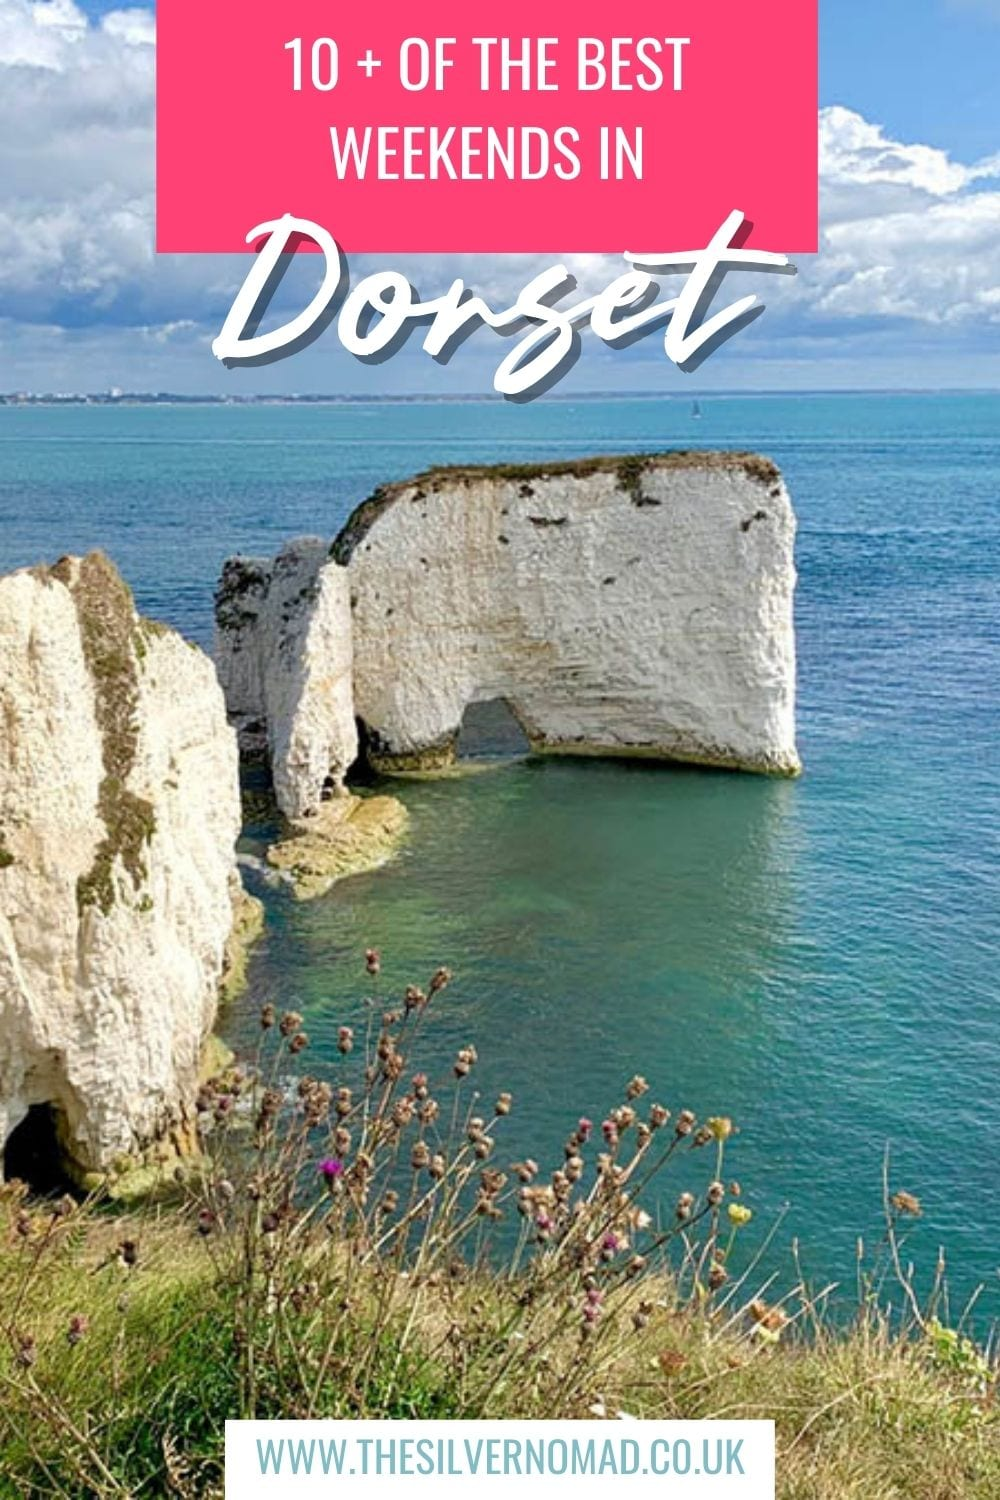 Chalk stack in the middle of the sea with 10+ of the Best Weekends in Dorset superimposed on top